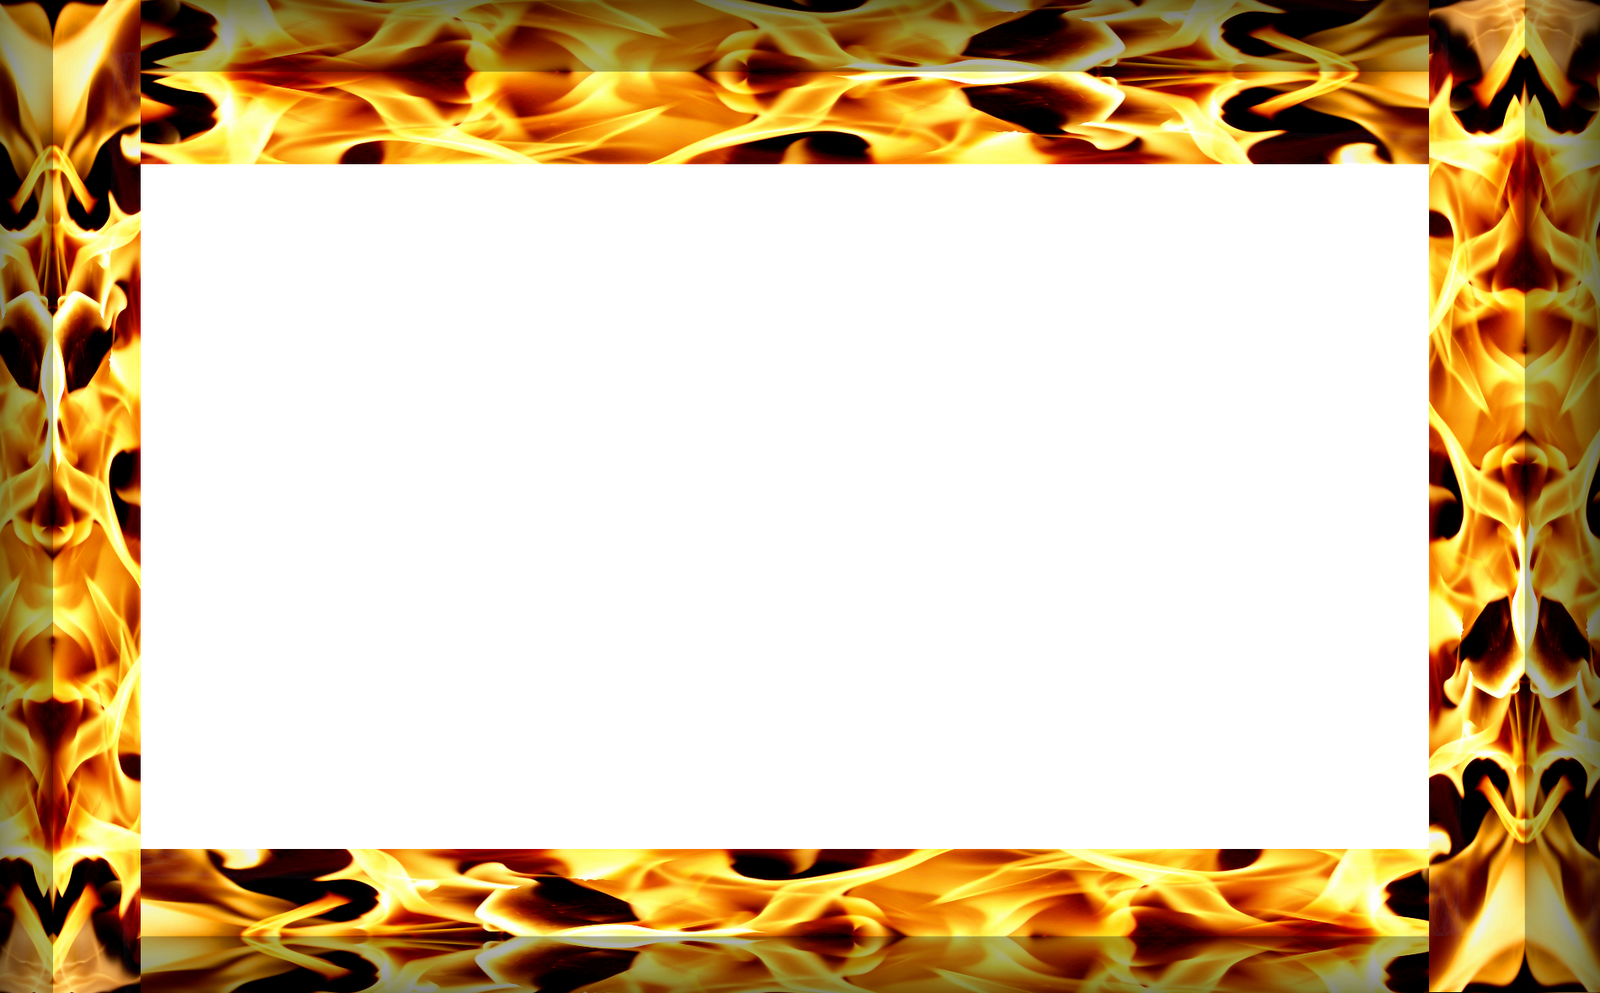 Flame clipart frame.  beauty fire border